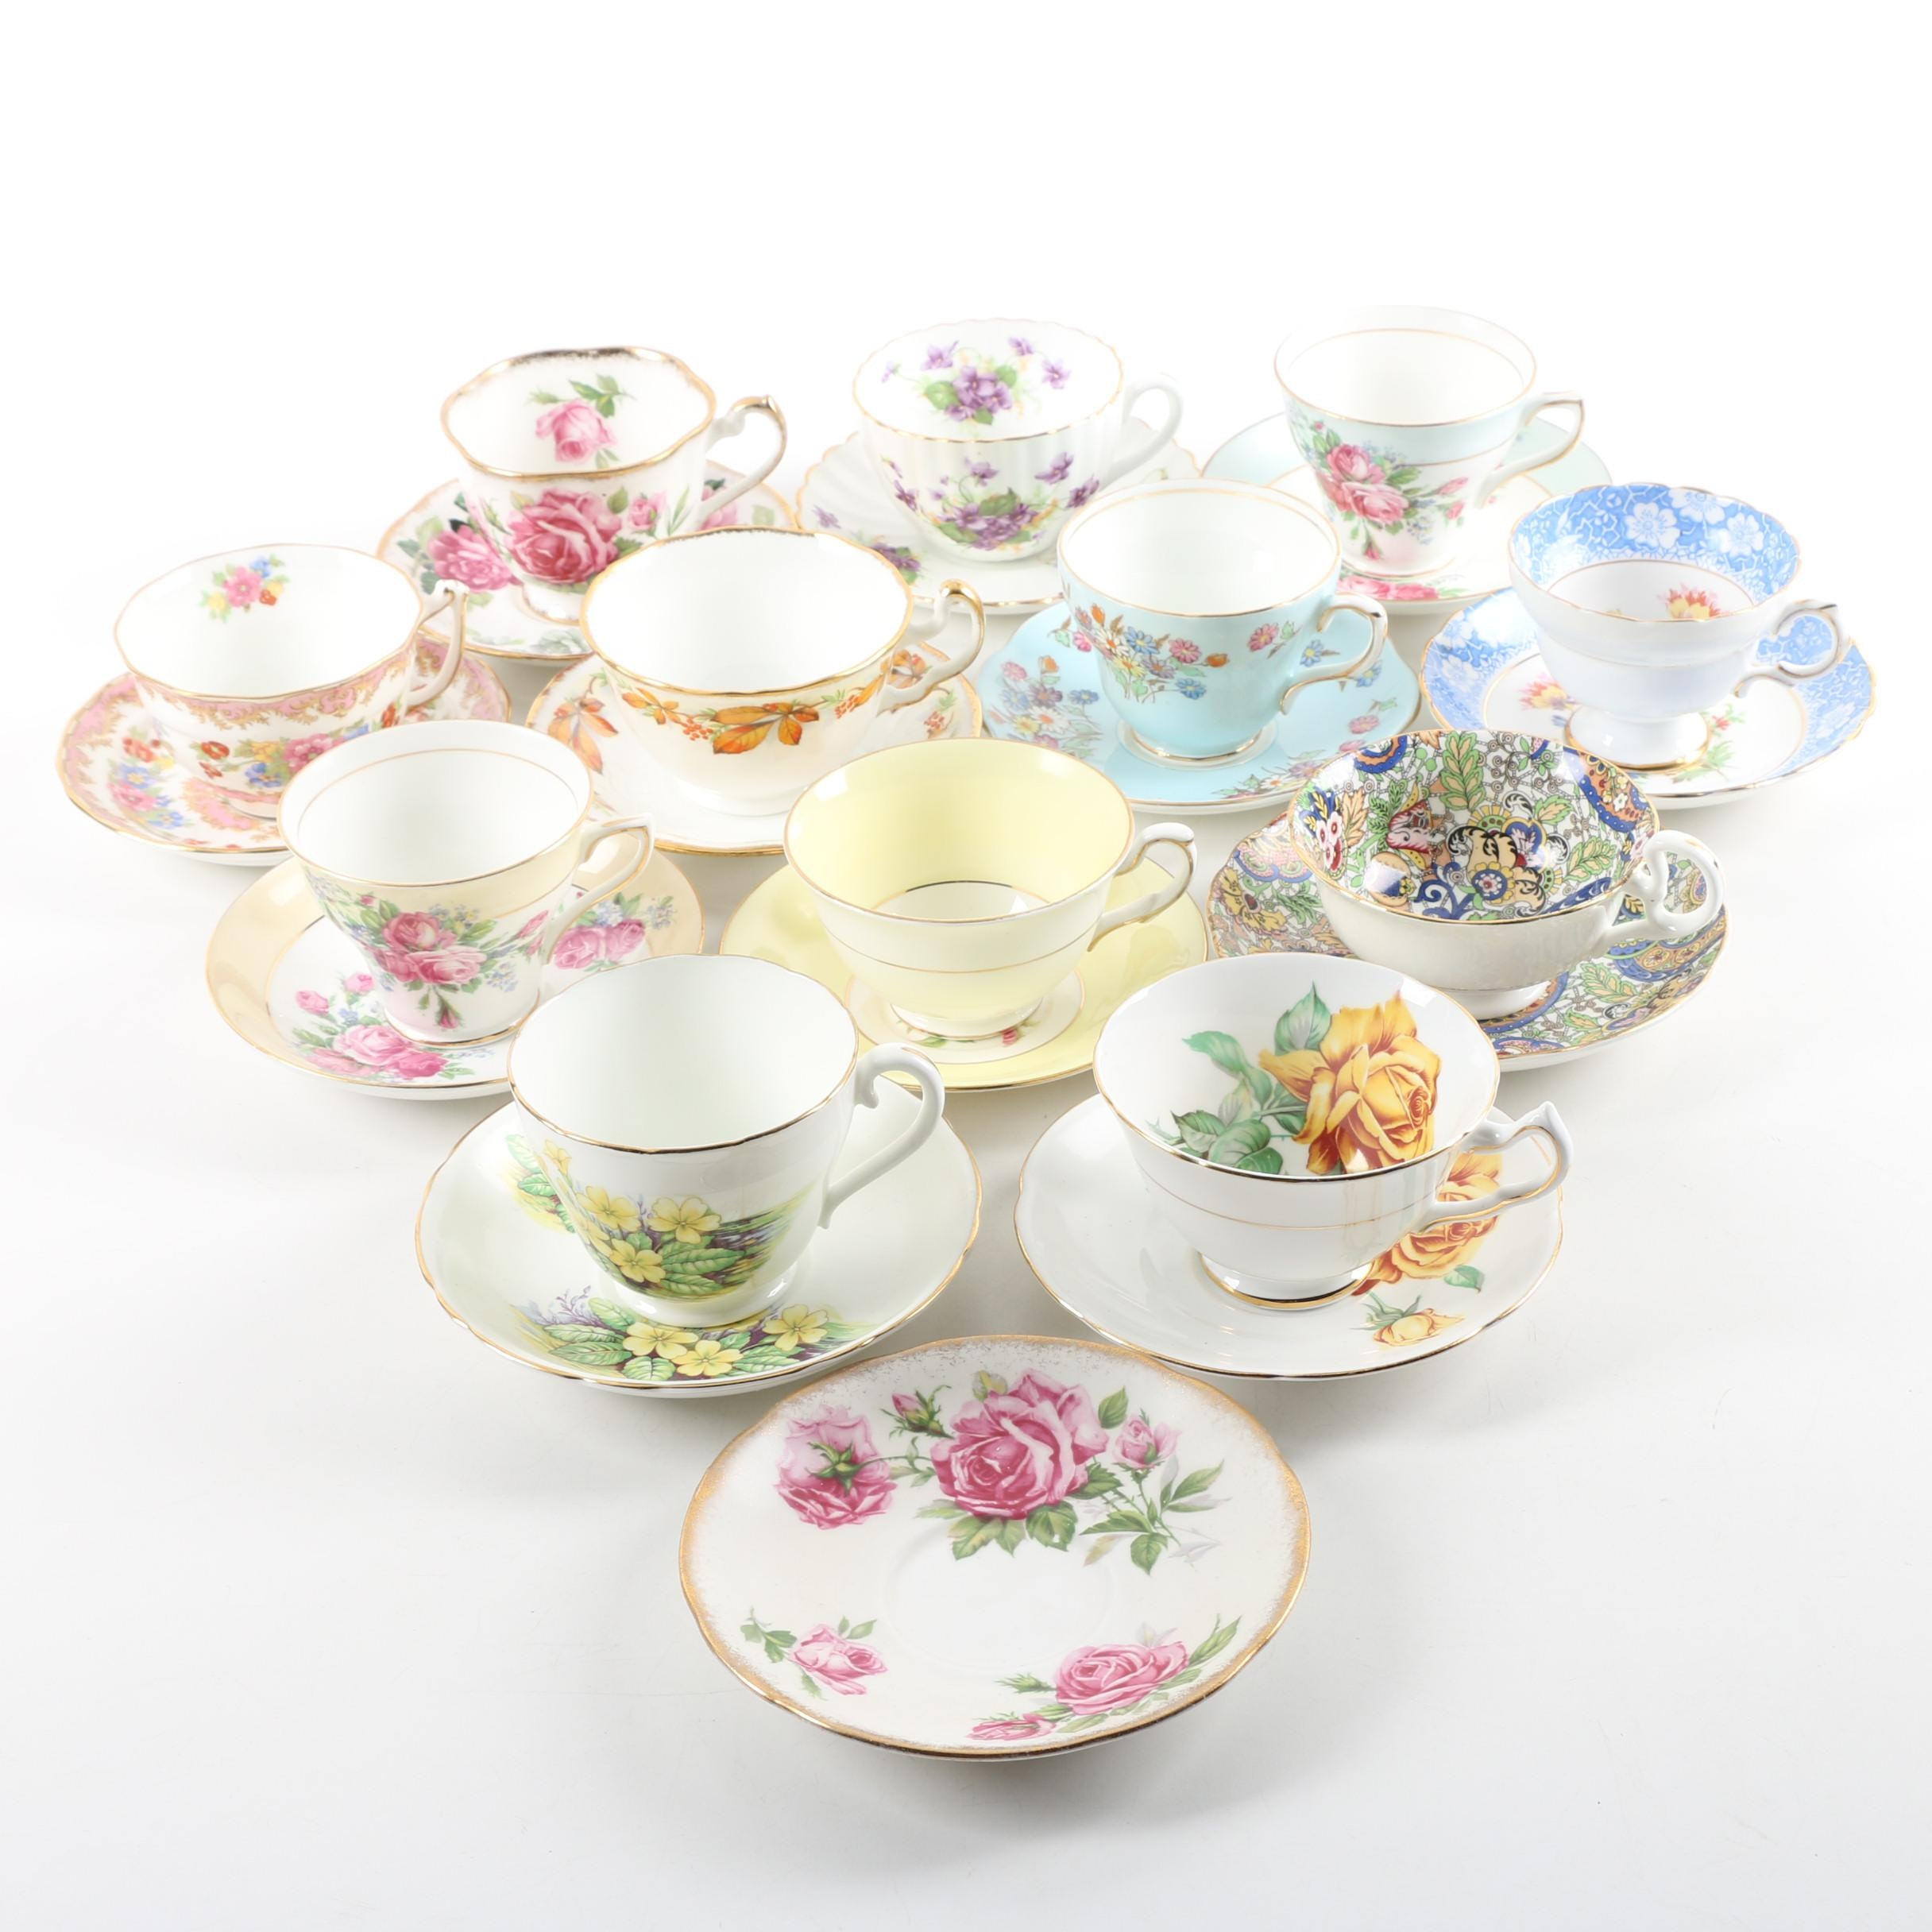 English Bone China Teacups and Saucers including Adderley